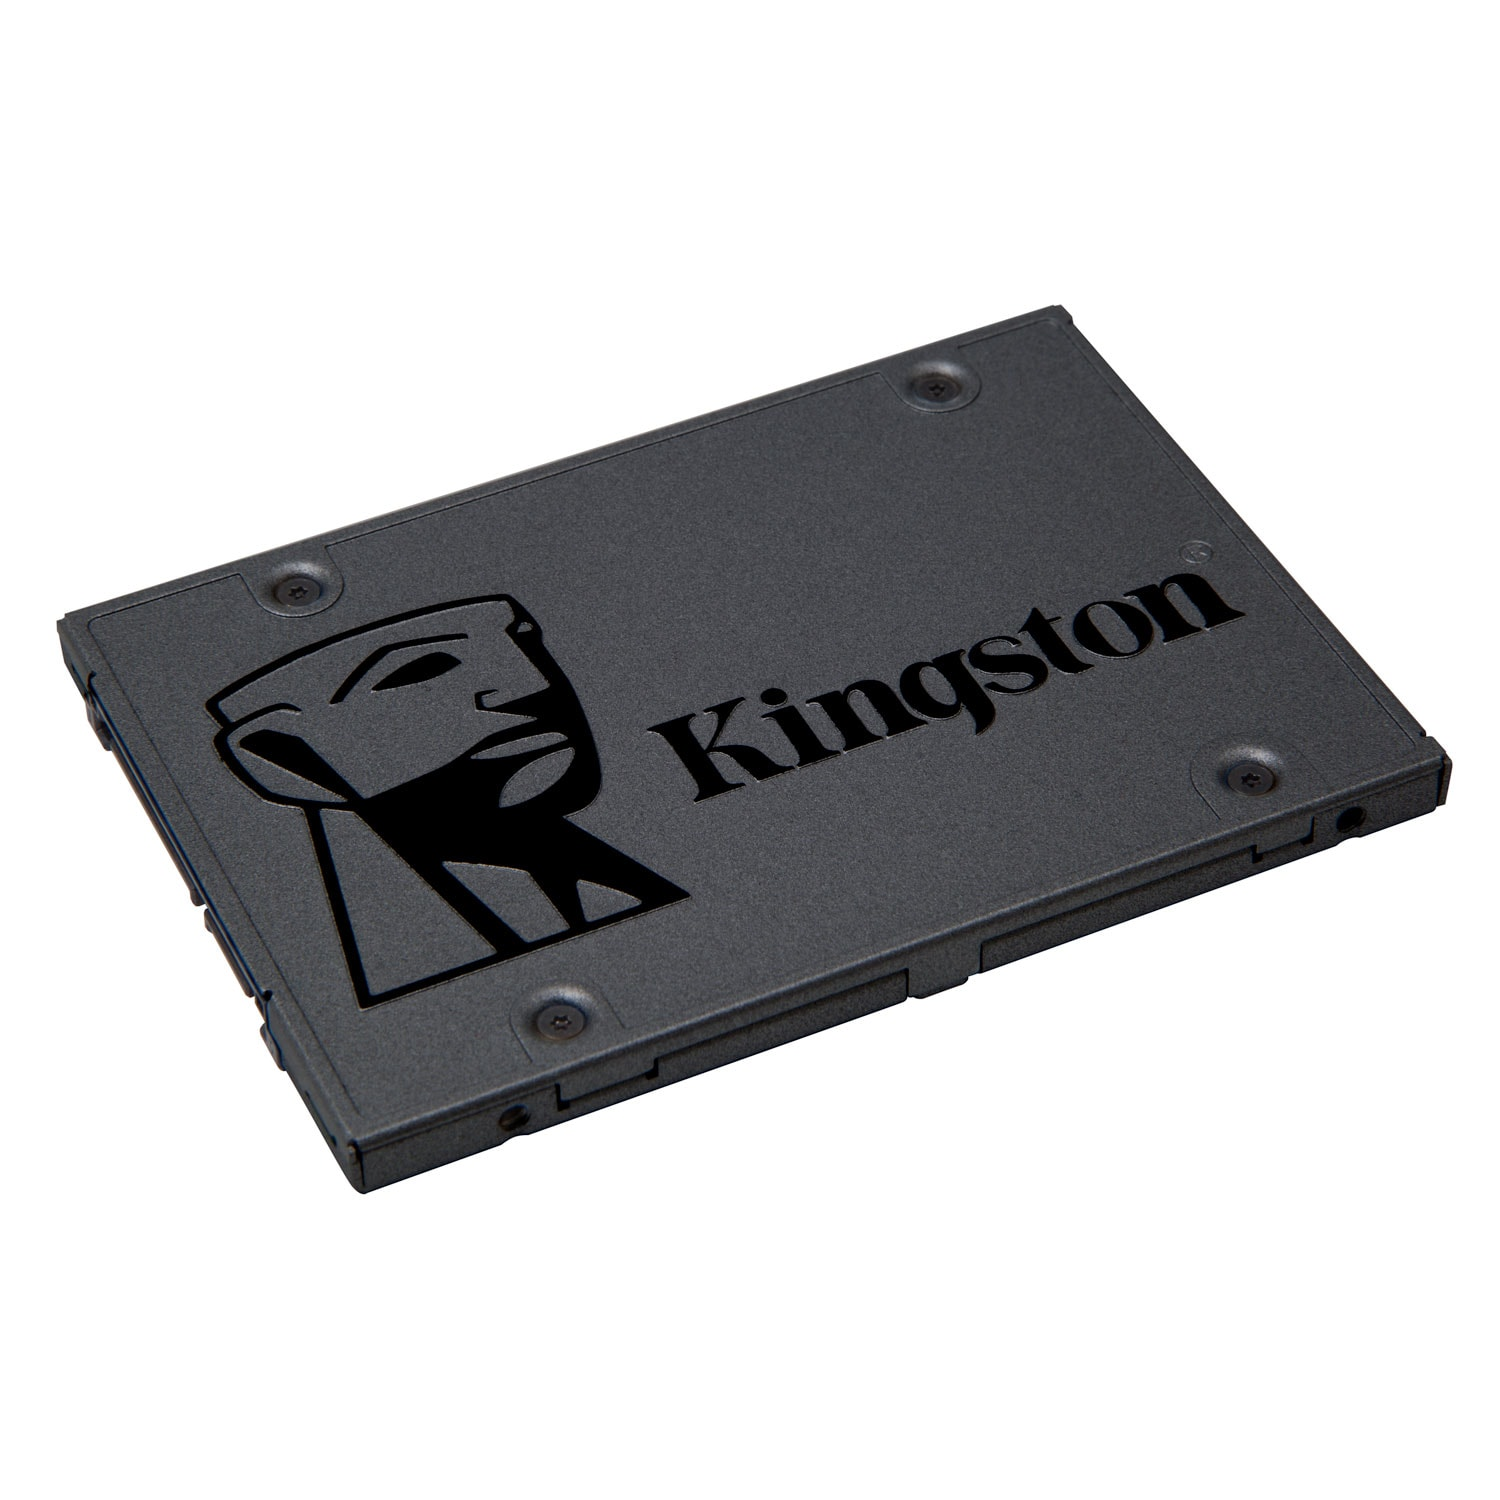 Kingston A400 120-128Go - Disque SSD Kingston - Cybertek.fr - 0